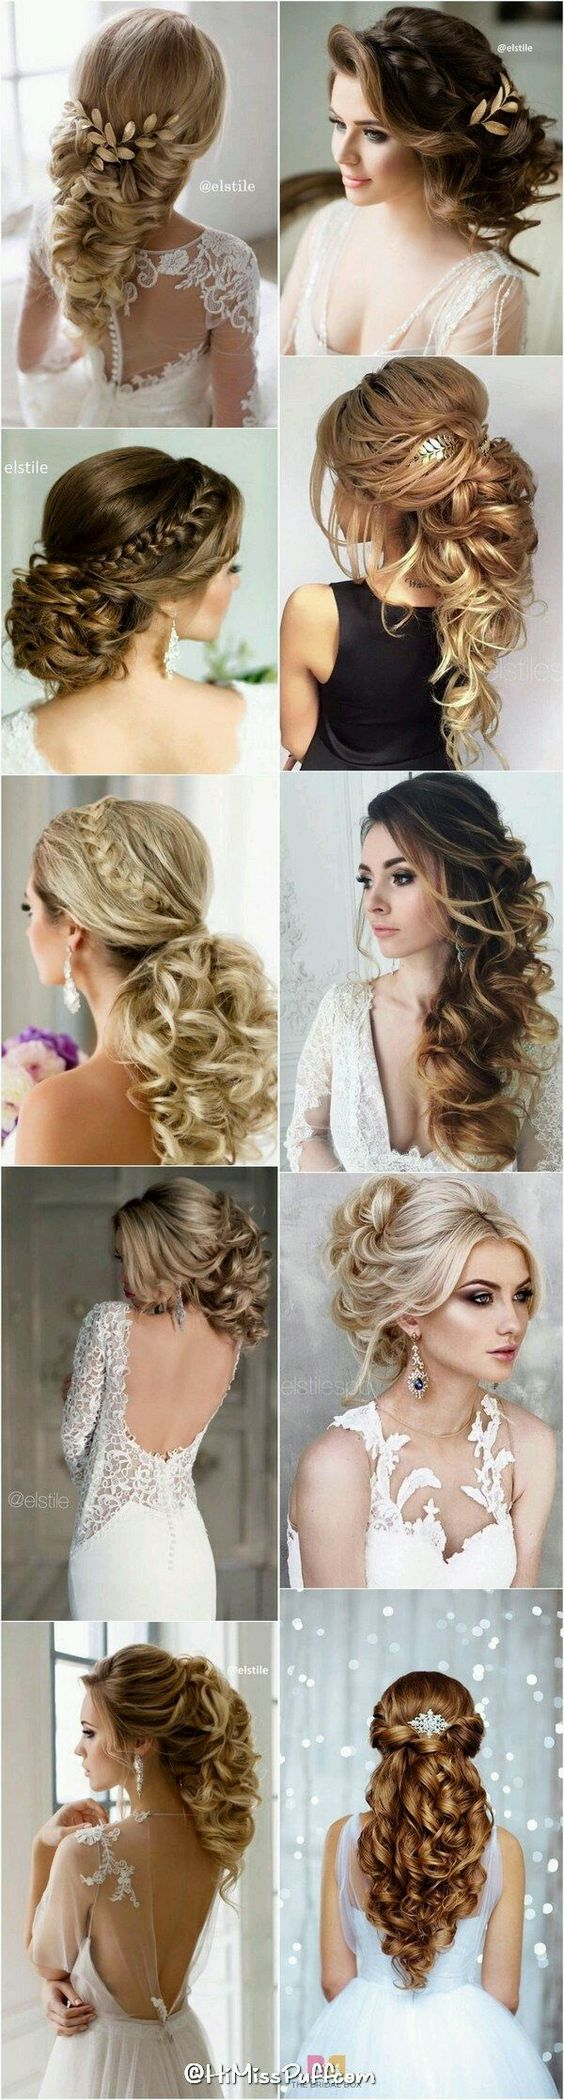 Hairstyles-Gorgeous Wedding Forٍ Chic Bride On Class World 3